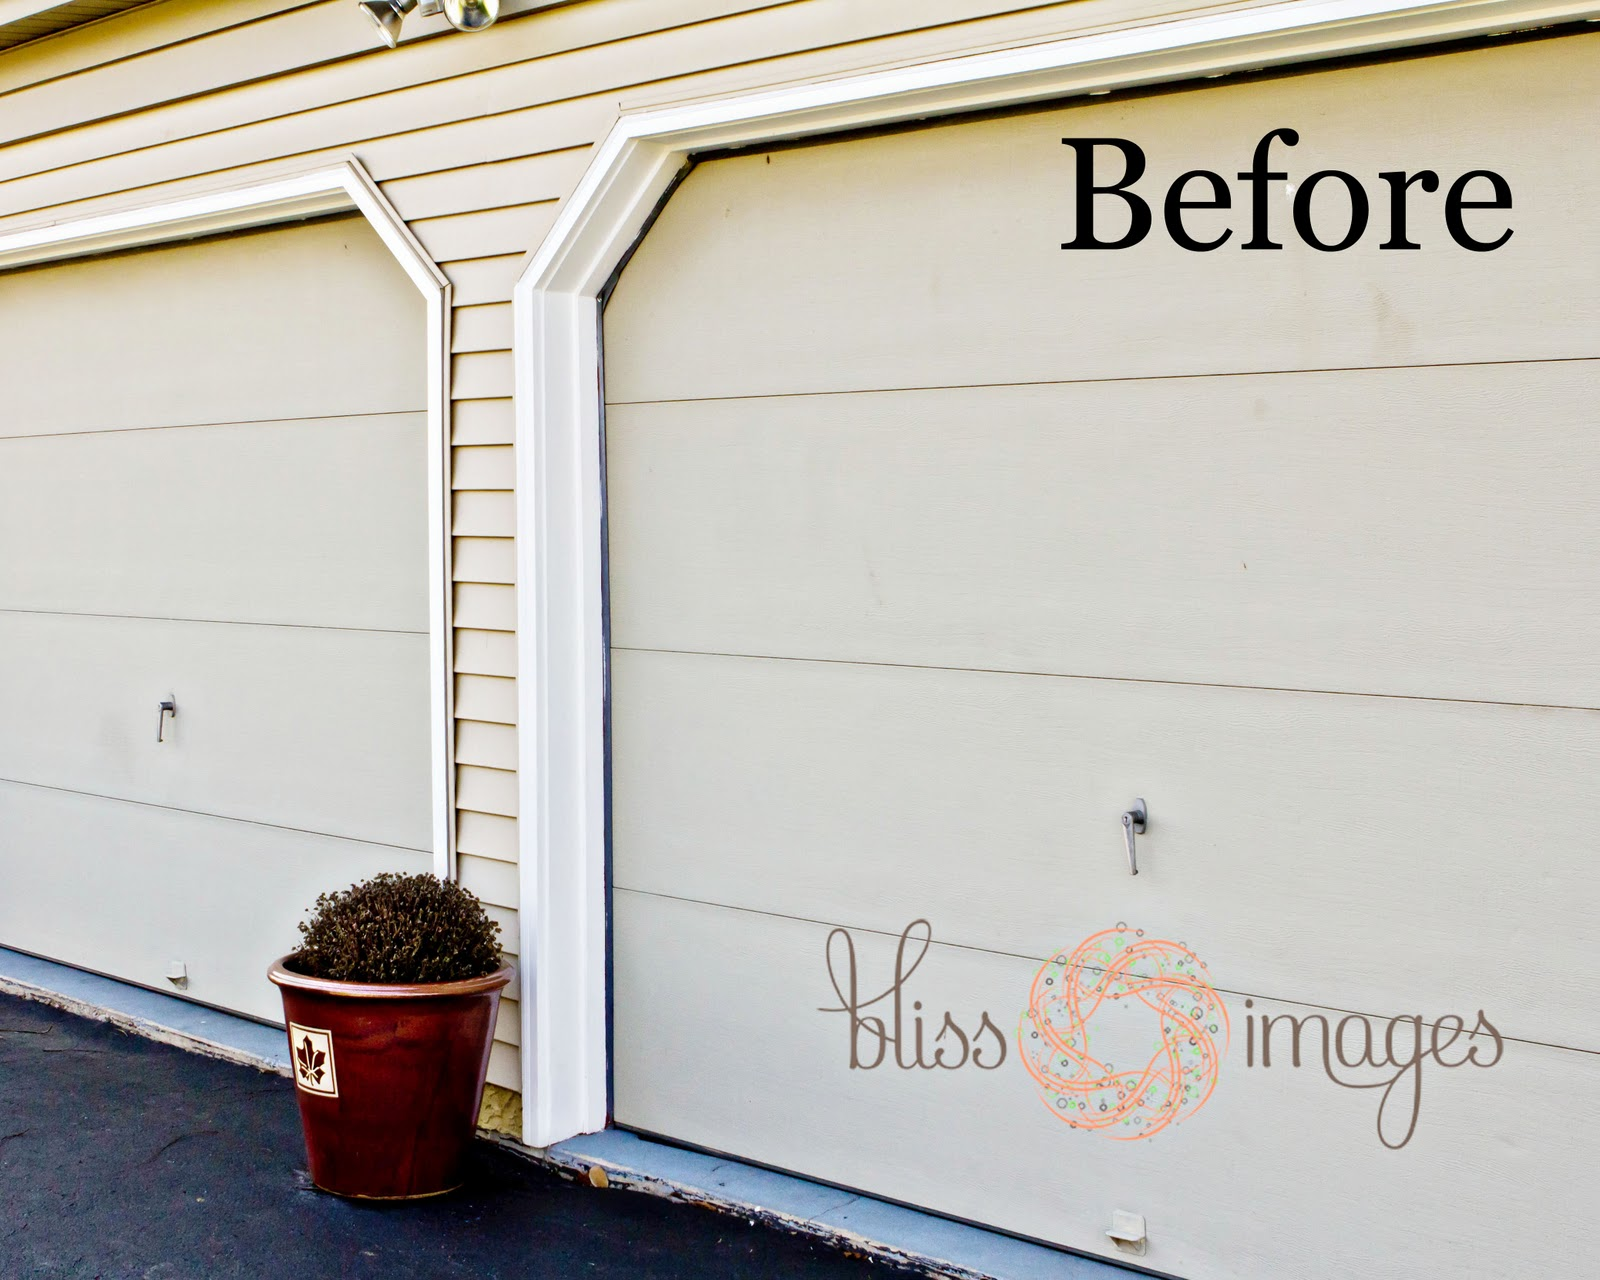 Bliss images and beyond new garage doors for New garage